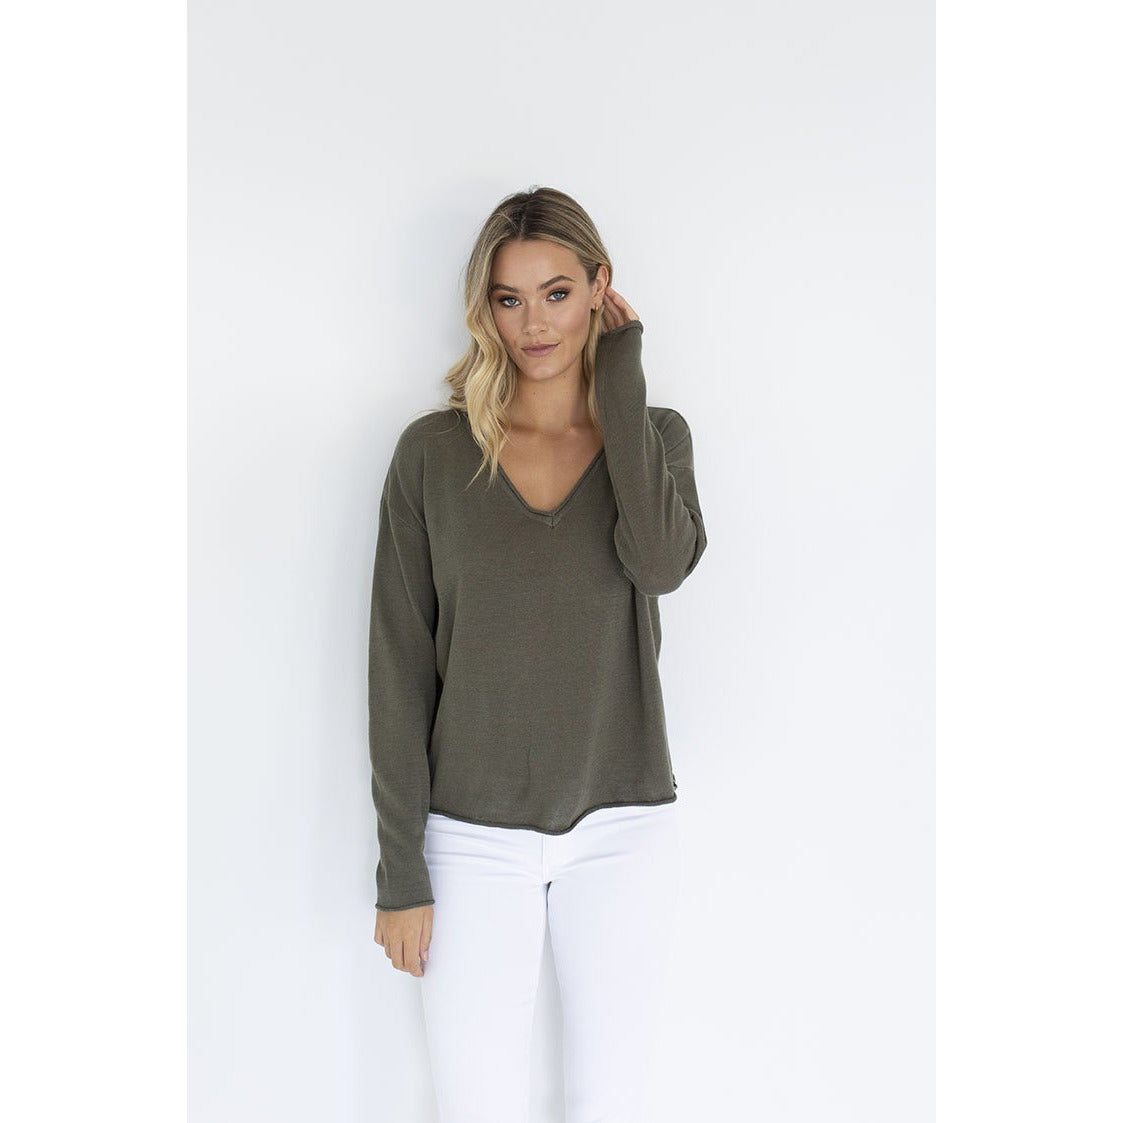 Humidity Haven Top in Khaki